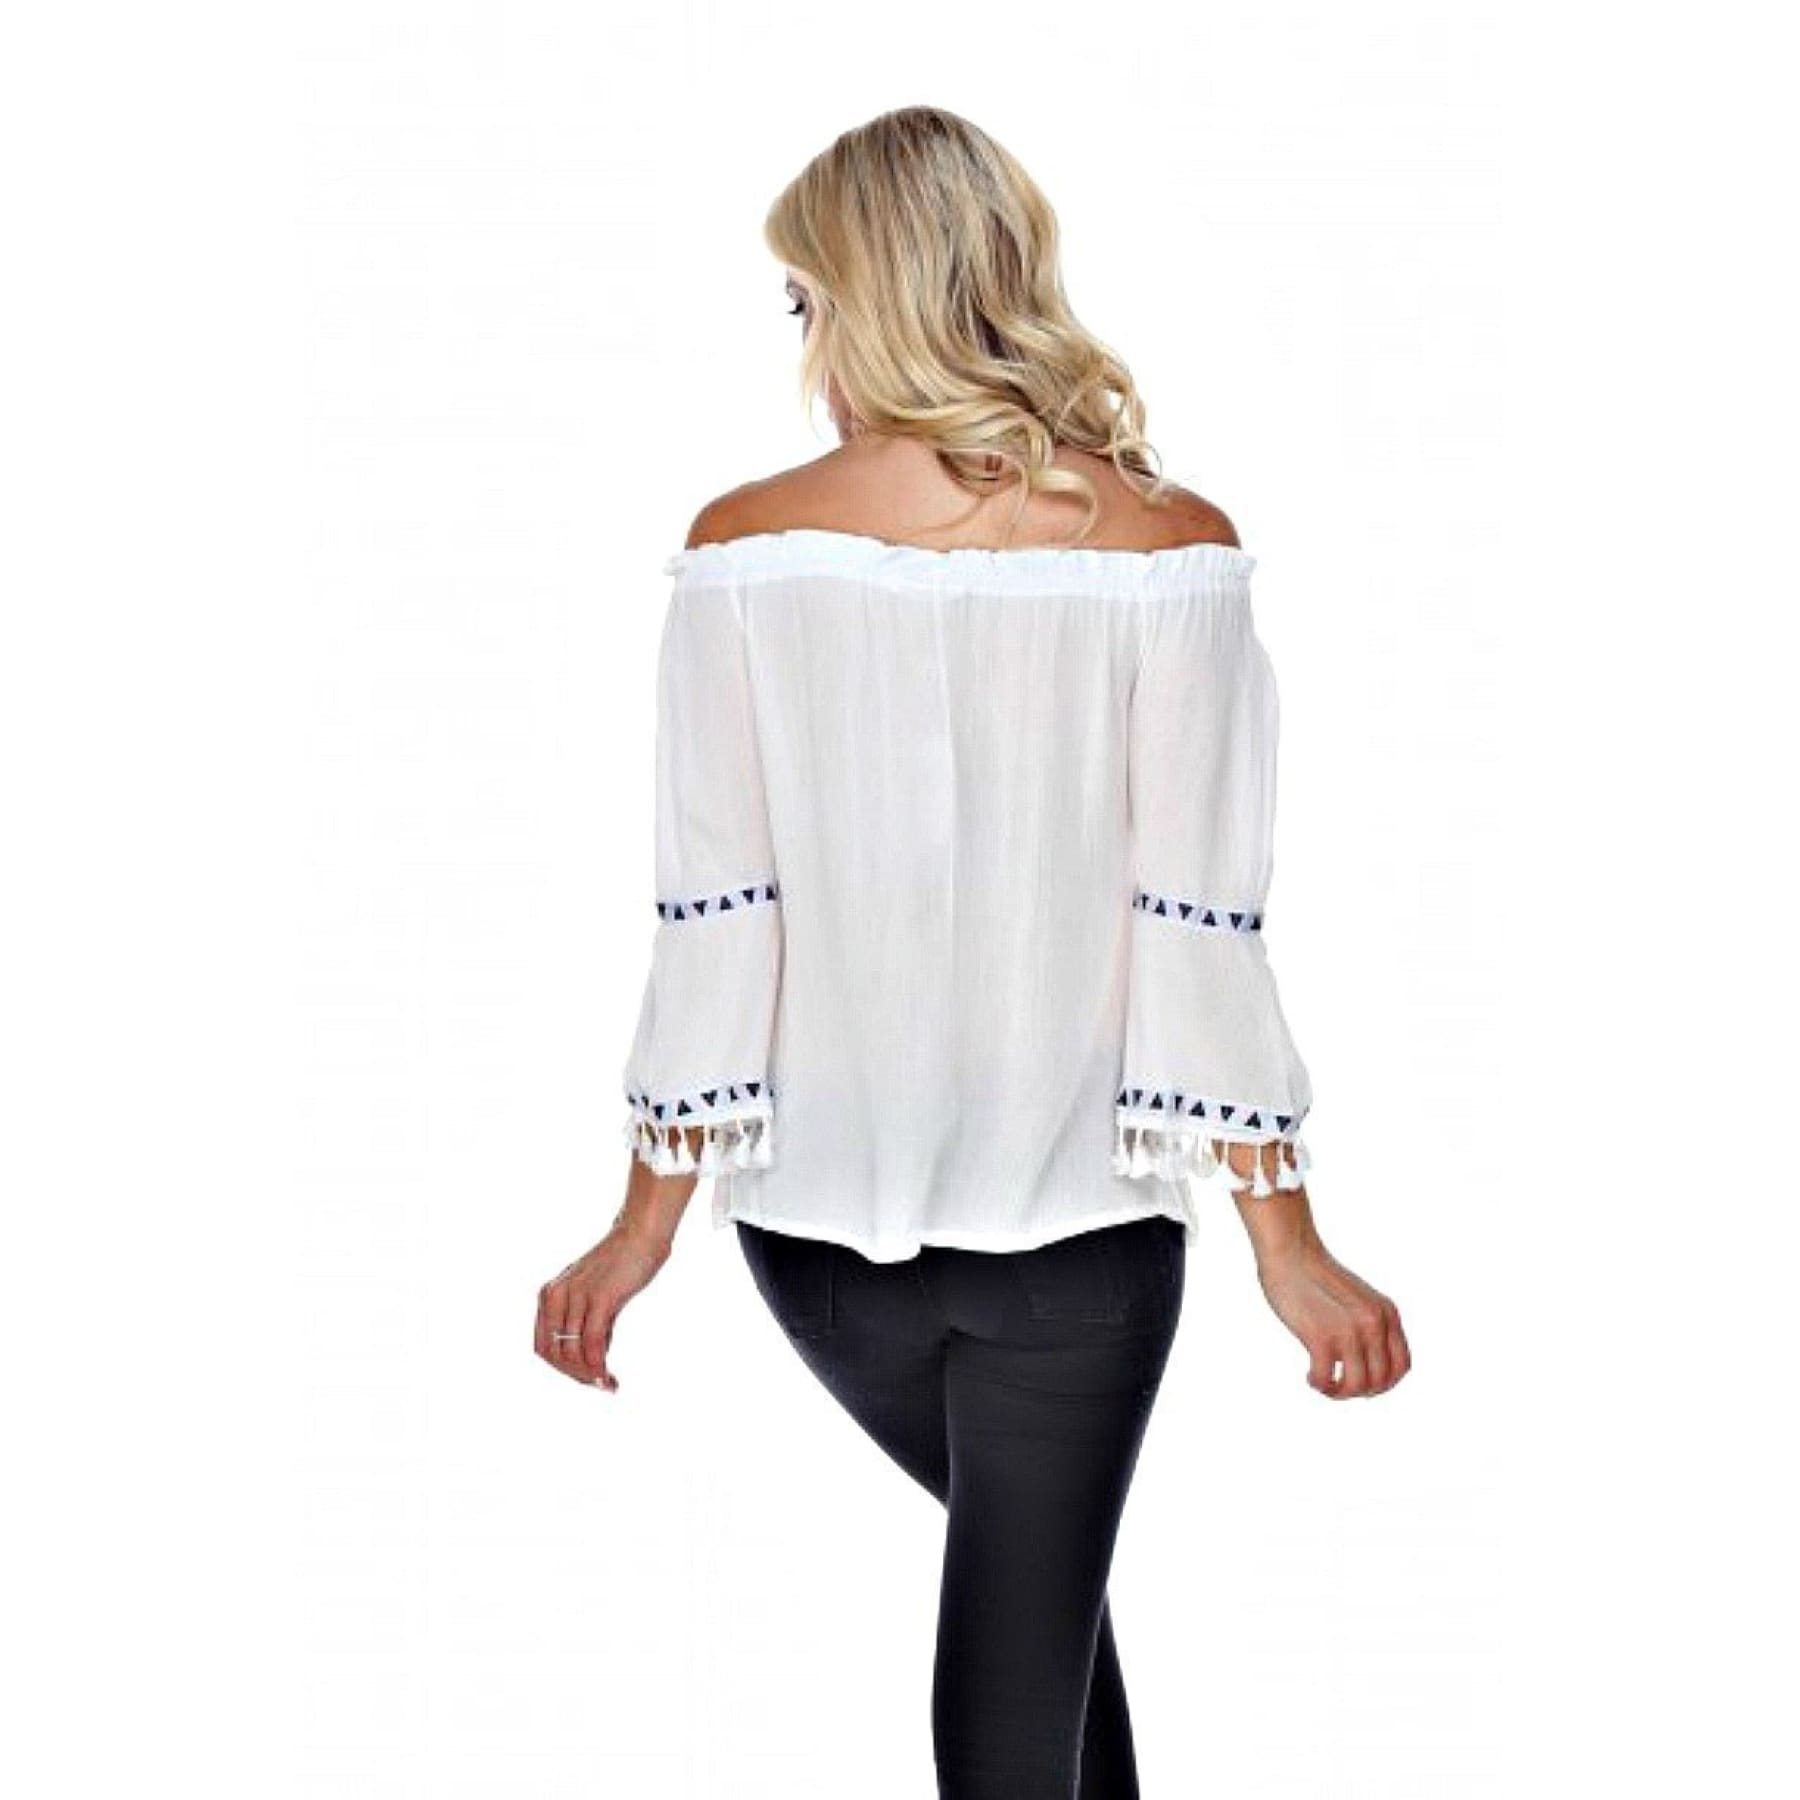 Fringe Benefits Off the Shoulder Top ~ 4 Colors,Top - Dirt Road Divas Boutique